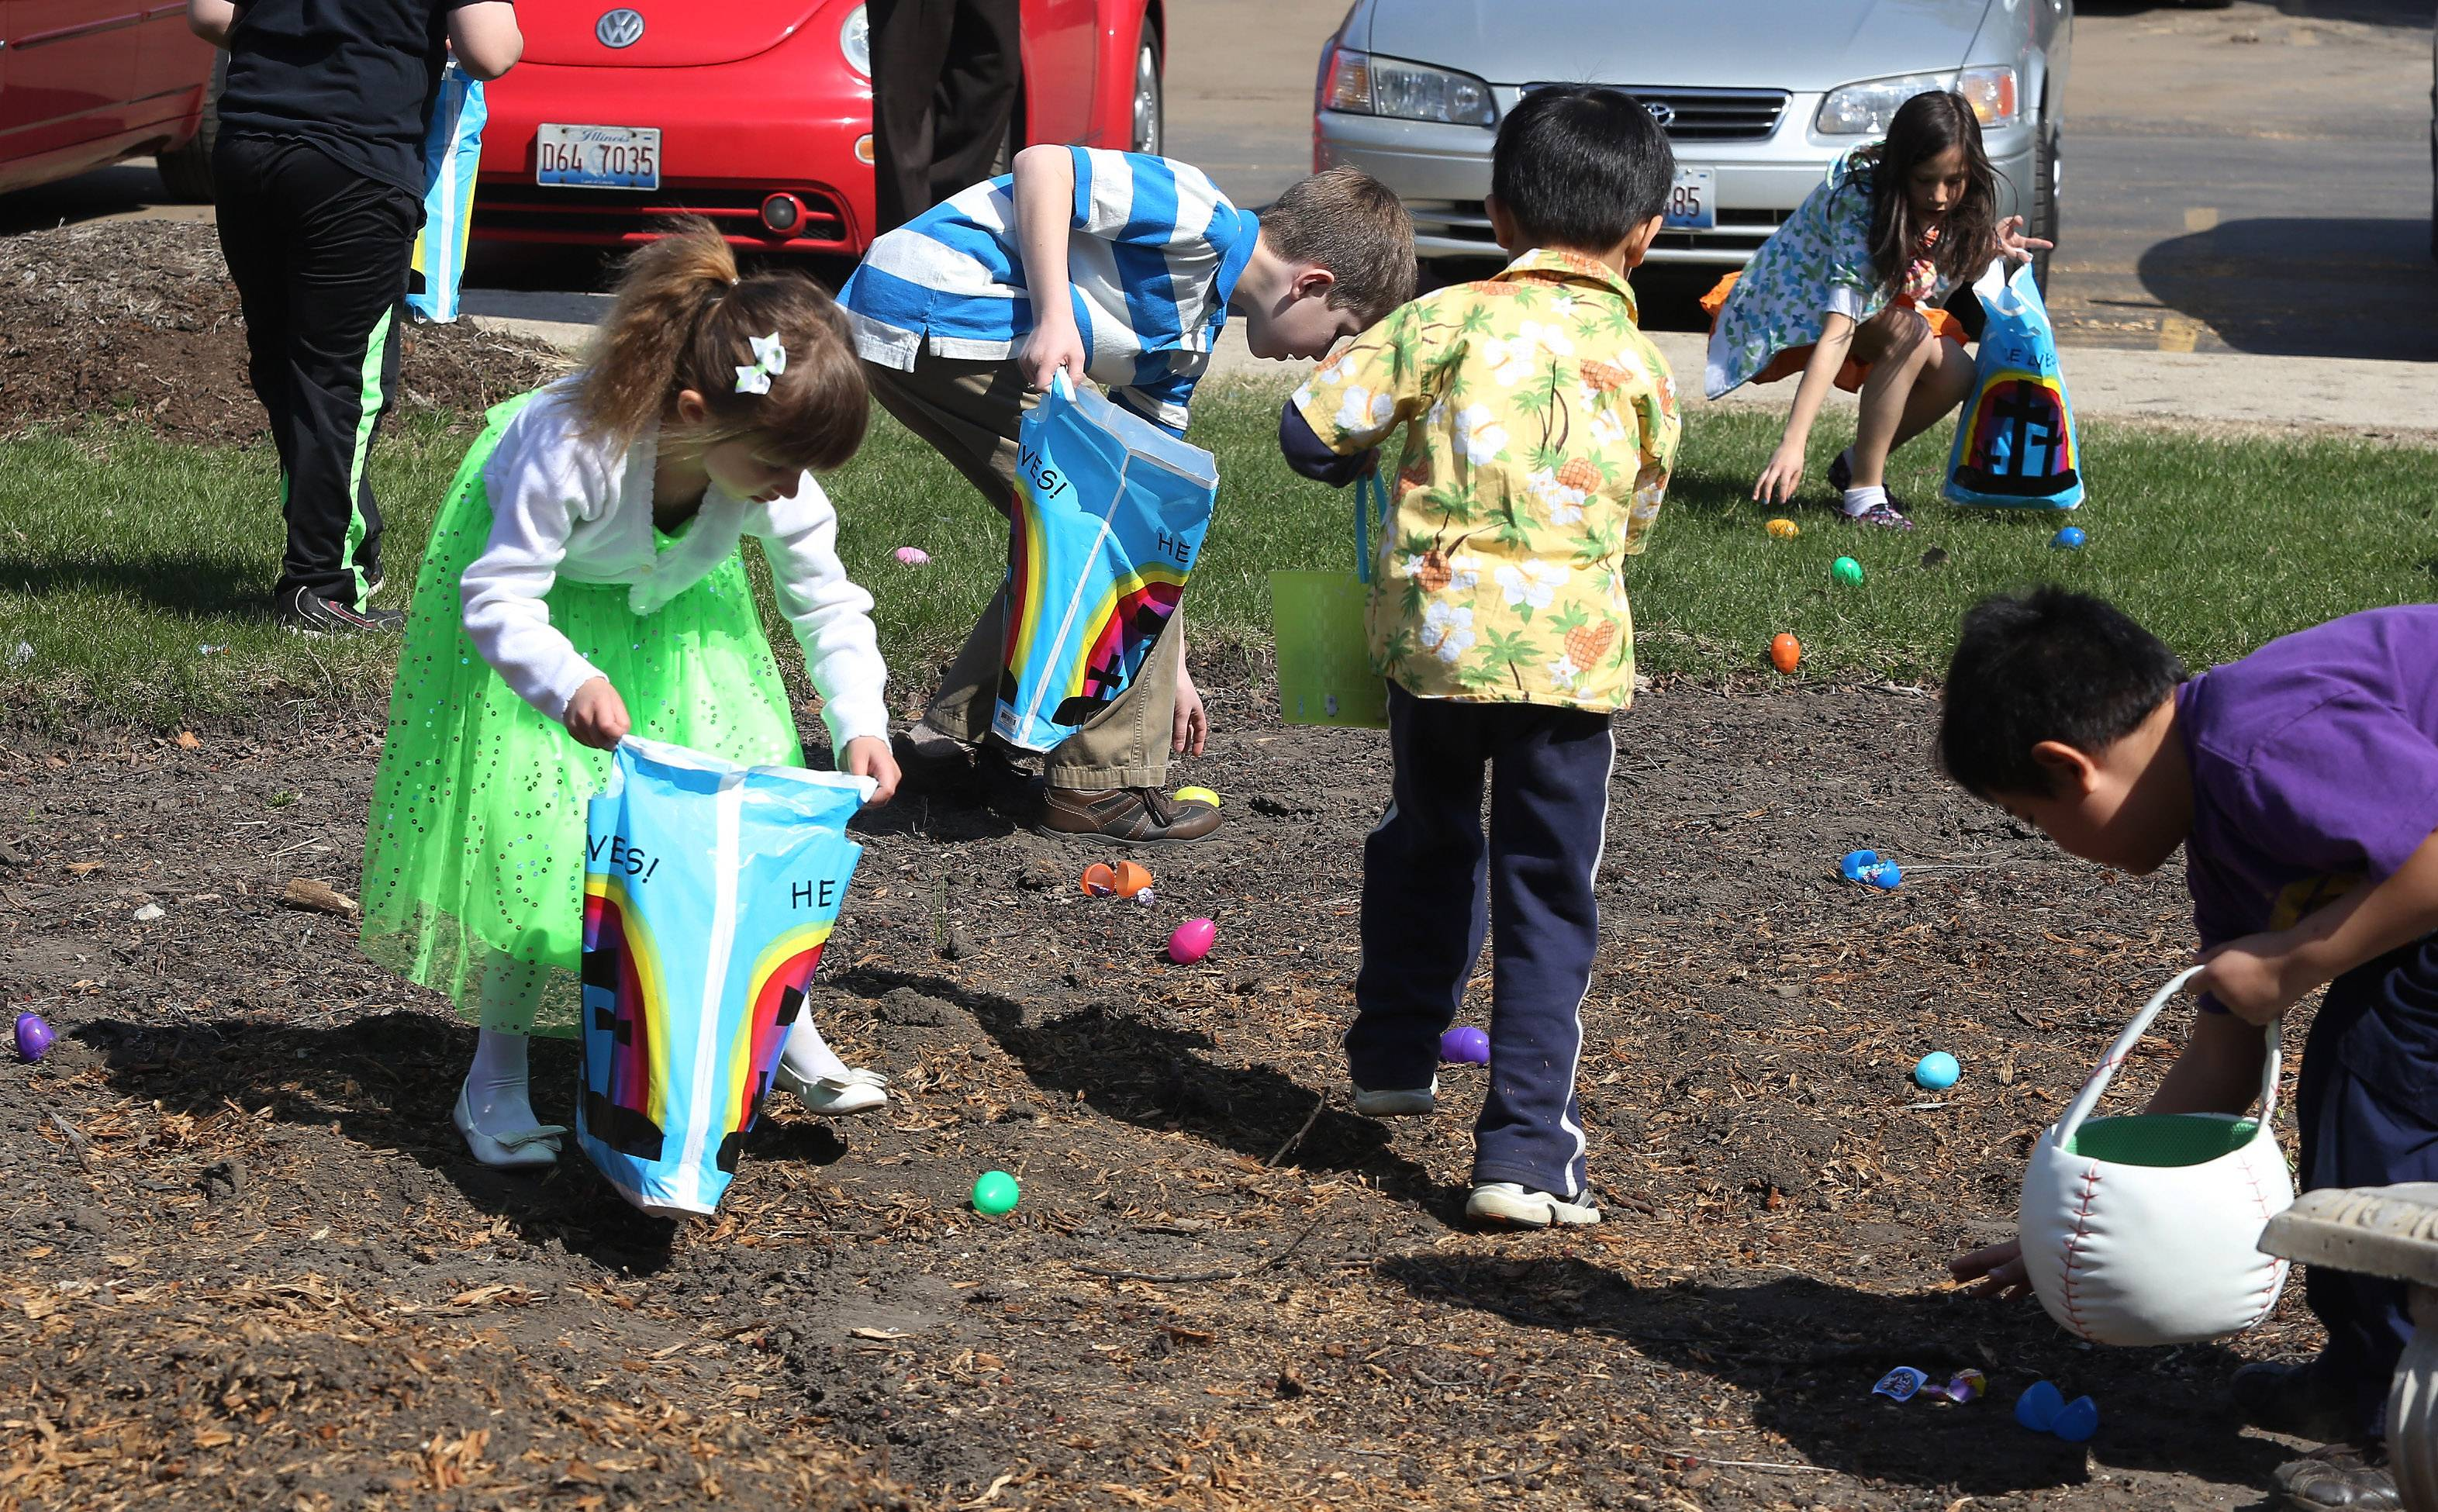 Children rushed around looking for plastic eggs during the Faith Lutheran Church Eggstravaganza event Easter Sunday in Arlington Heights. About 30 children searched for 850 eggs, worked on religious crafts, and listened to the story of Easter.